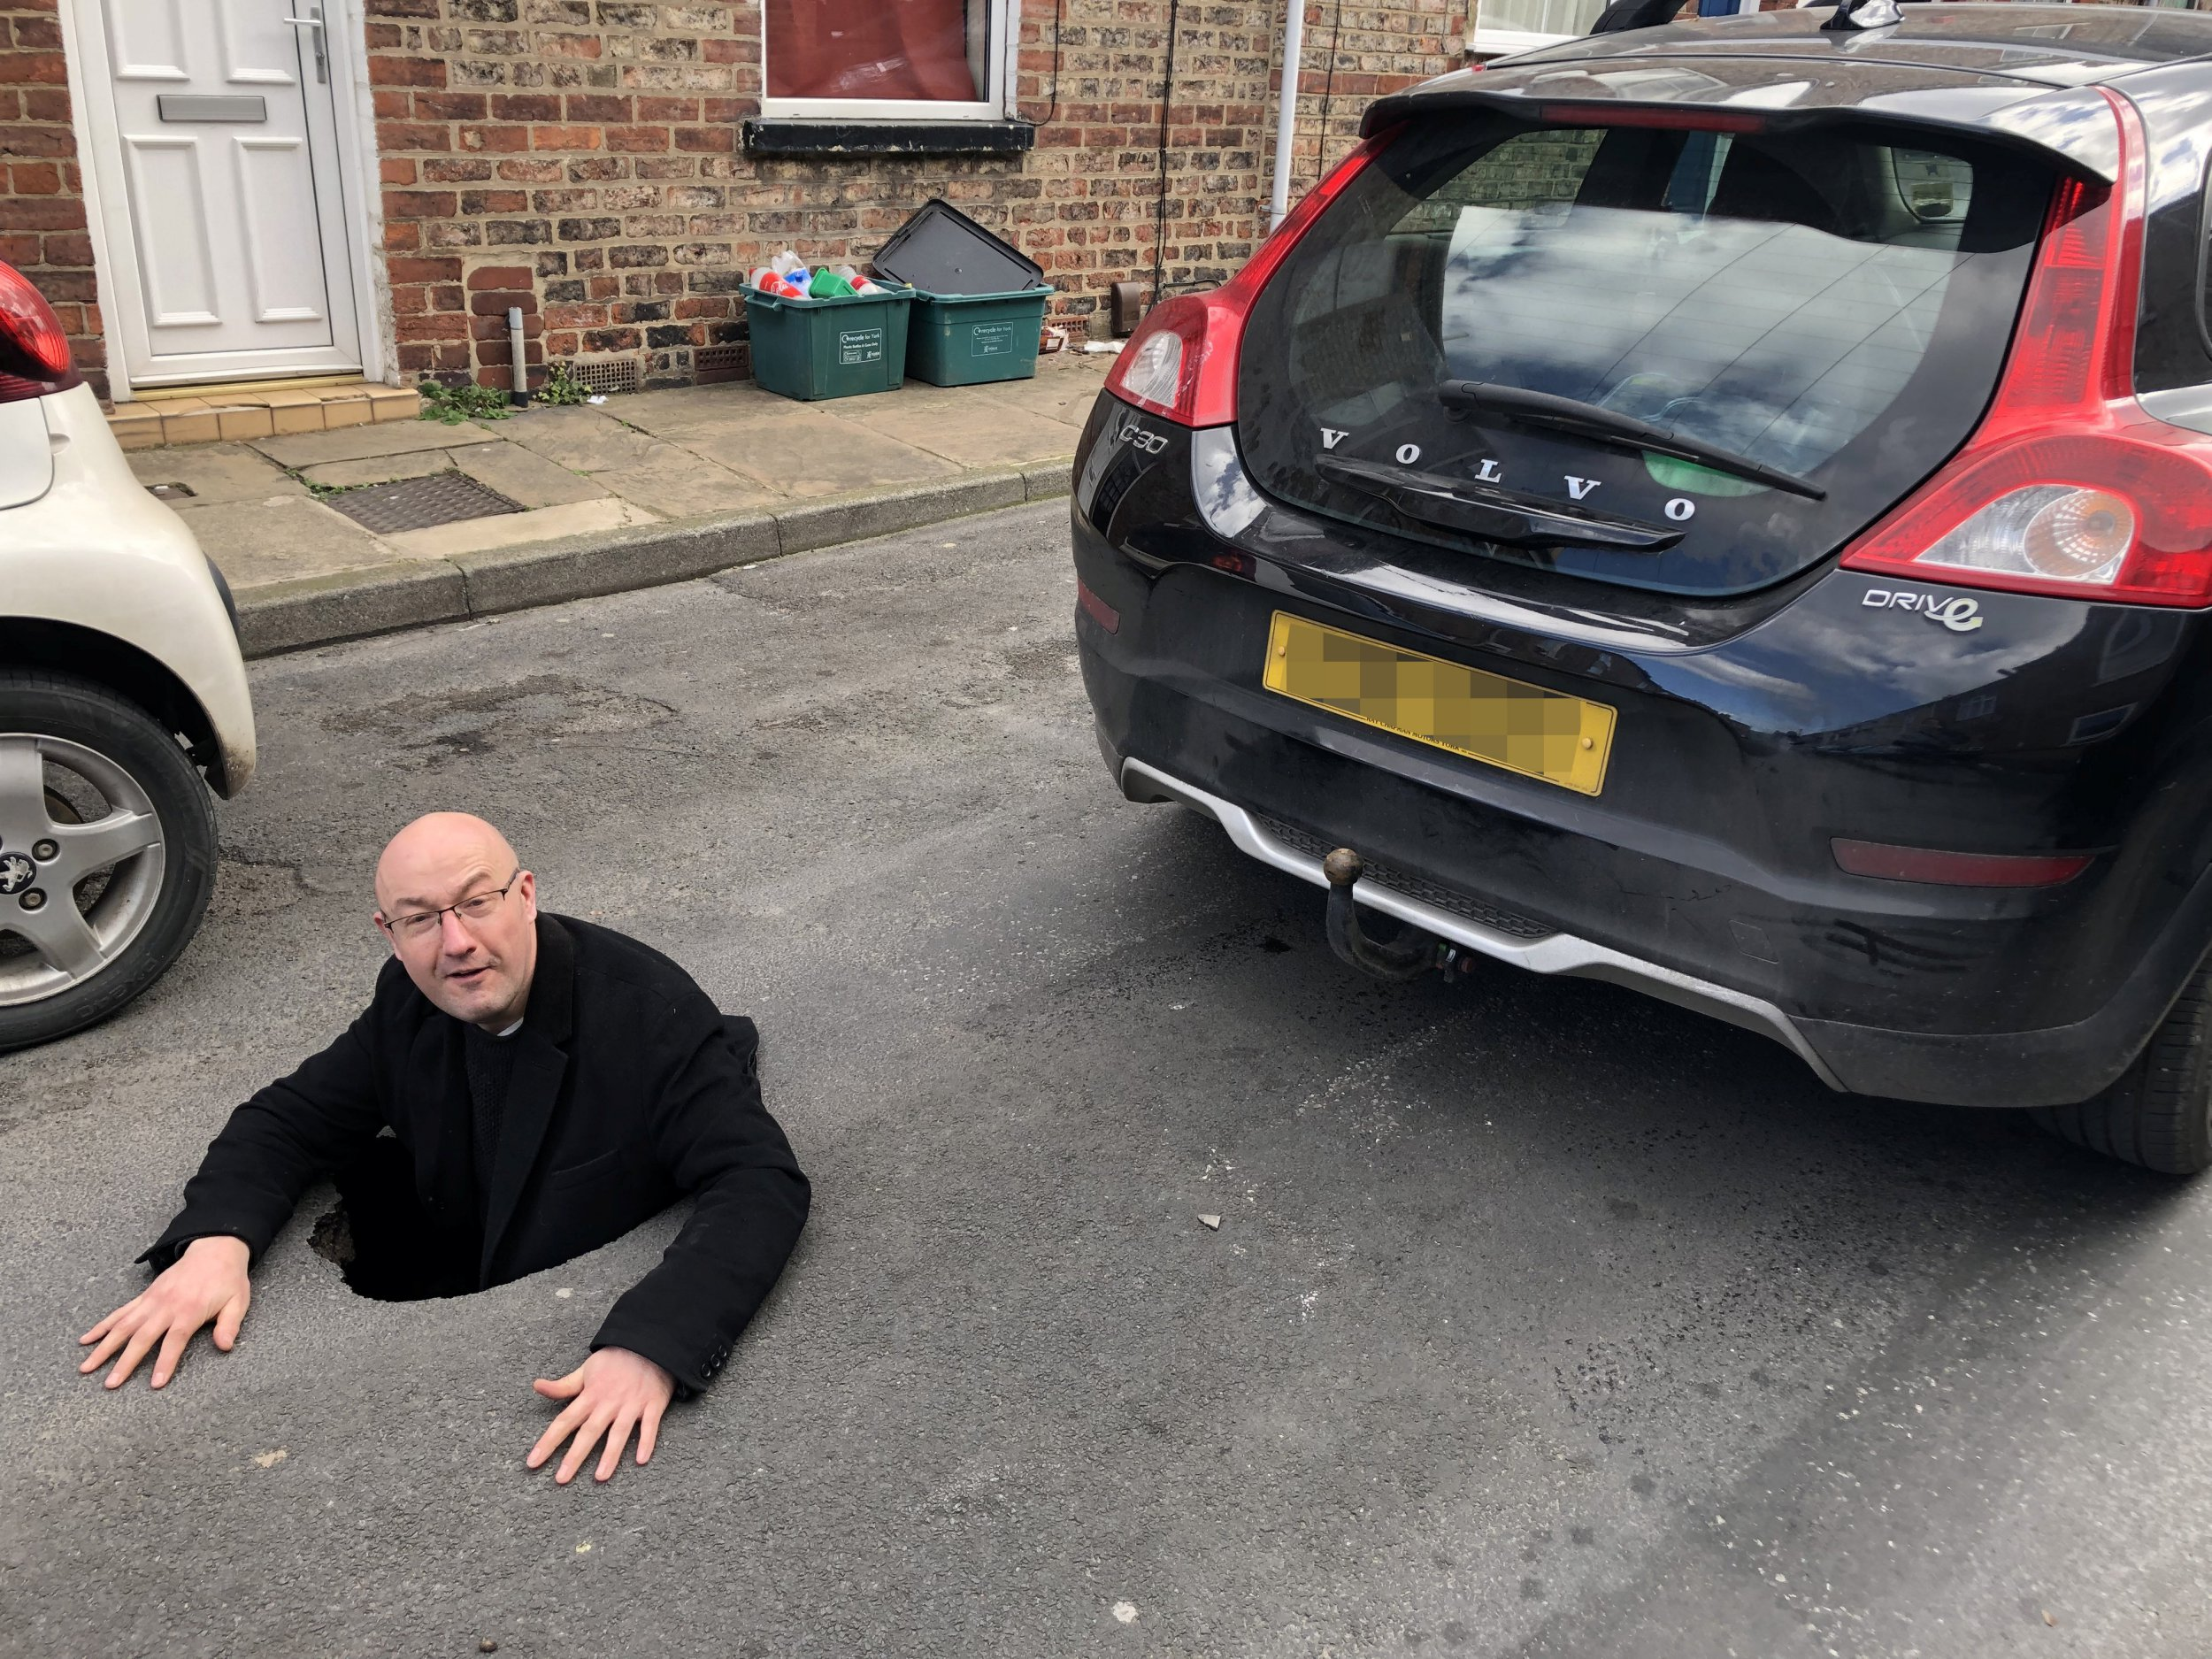 """Grant Parker in the pot hole, Grant Parker was driving his Volvo C30 in Granville Terrace, off Hull Road, York , when part of the road surface collapsed - opening up a hole in the road big enough for him to climb into. See SWNS story SWLEhole; A motorist thought """"hell had opened up"""" when his vehicle plunged into a four foot deep pothole - that was big enough for him to climb inside. stunned Grant Parker, 46, was driving down a residential road when part of the tarmac suddenly collapsed under the weight of his wheel."""